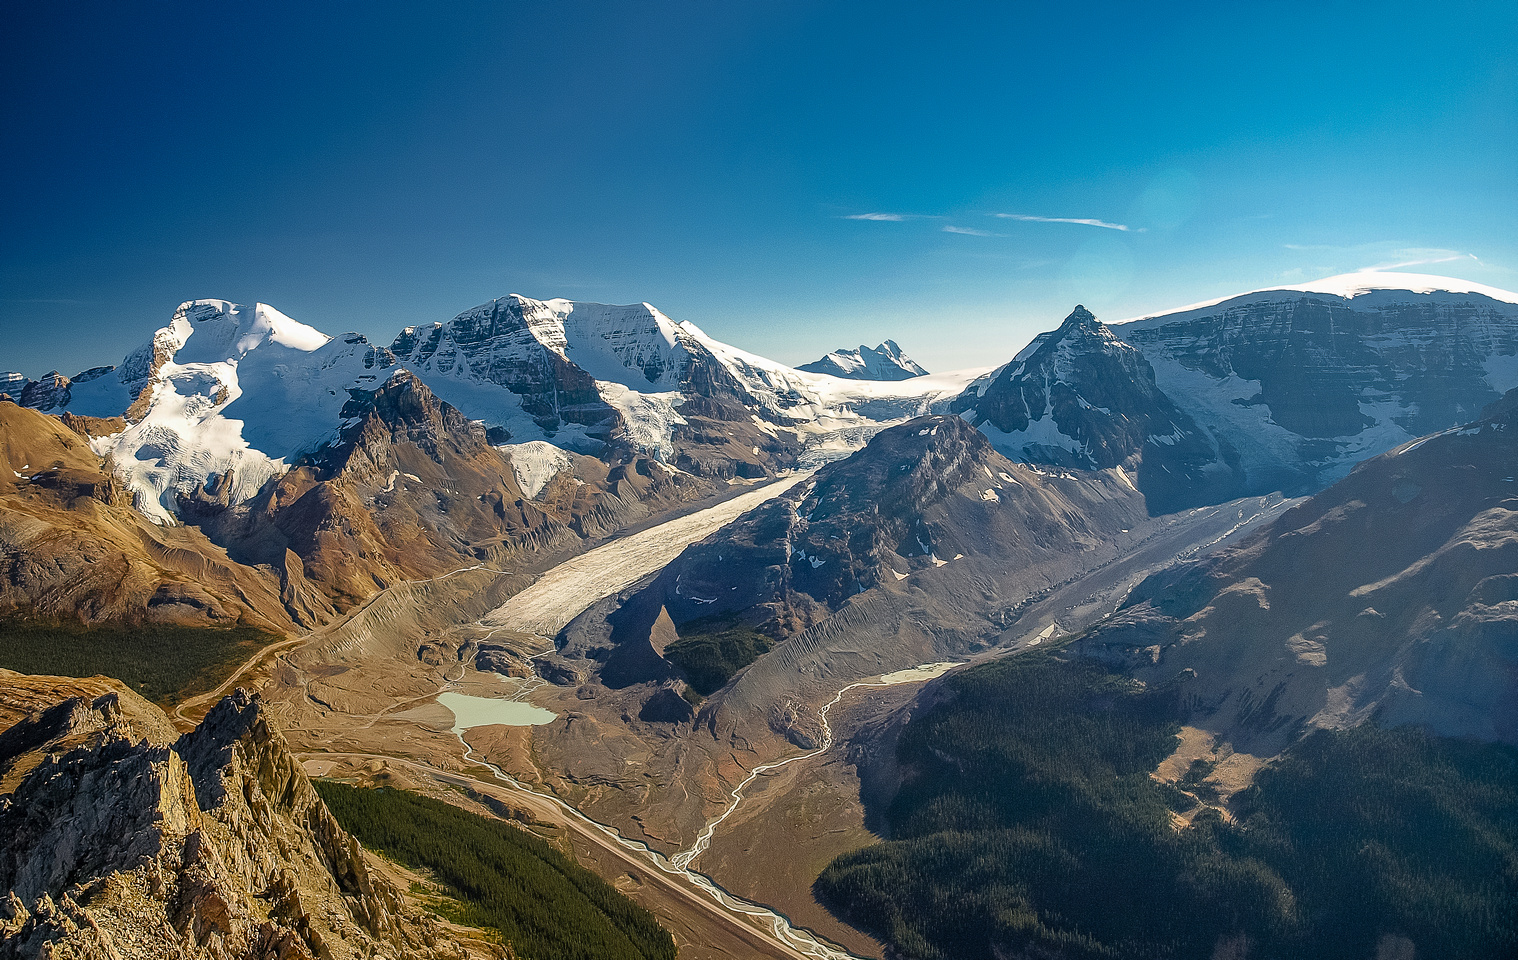 The view includes Athabasca, Andromeda, Sunwapta Lake, Athabasca Glacier, Bryce and Snow Dome (L to R).